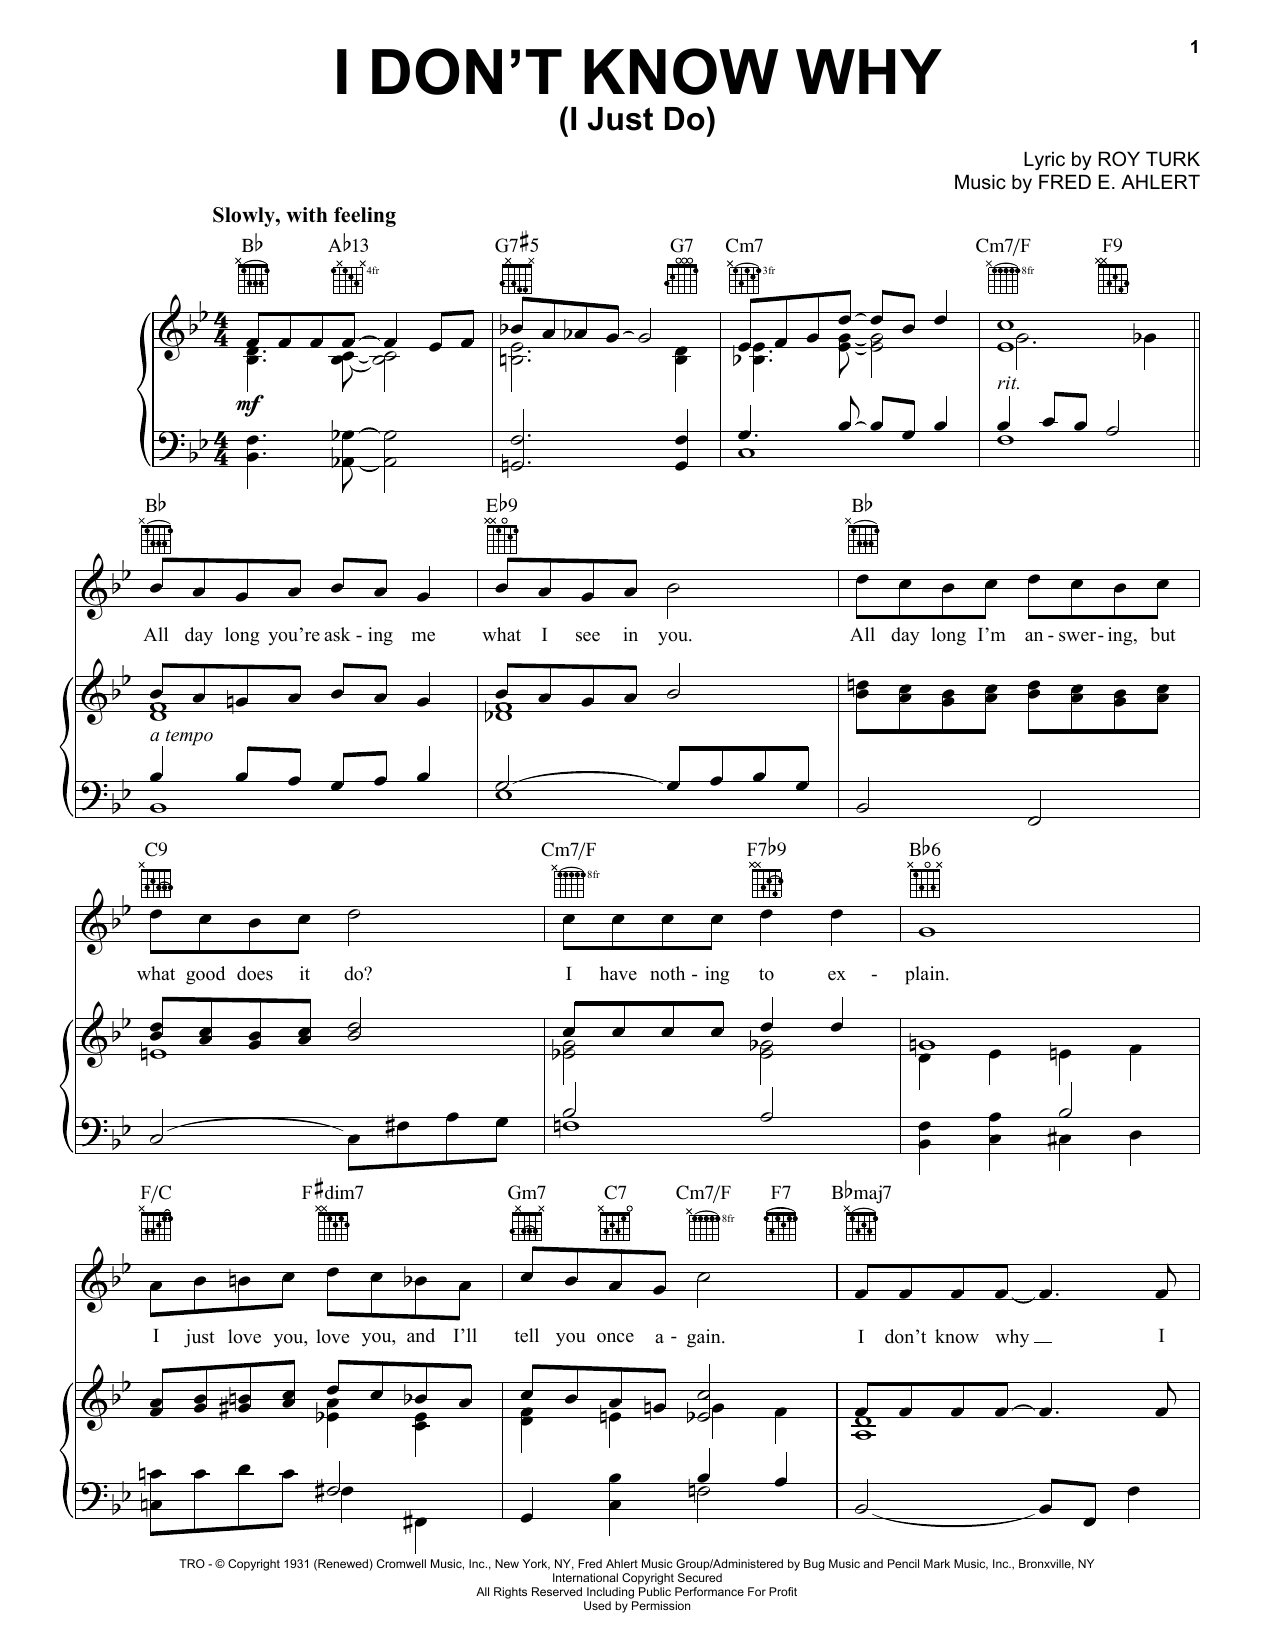 Frank Sinatra I Don't Know Why (I Just Do) sheet music notes and chords. Download Printable PDF.